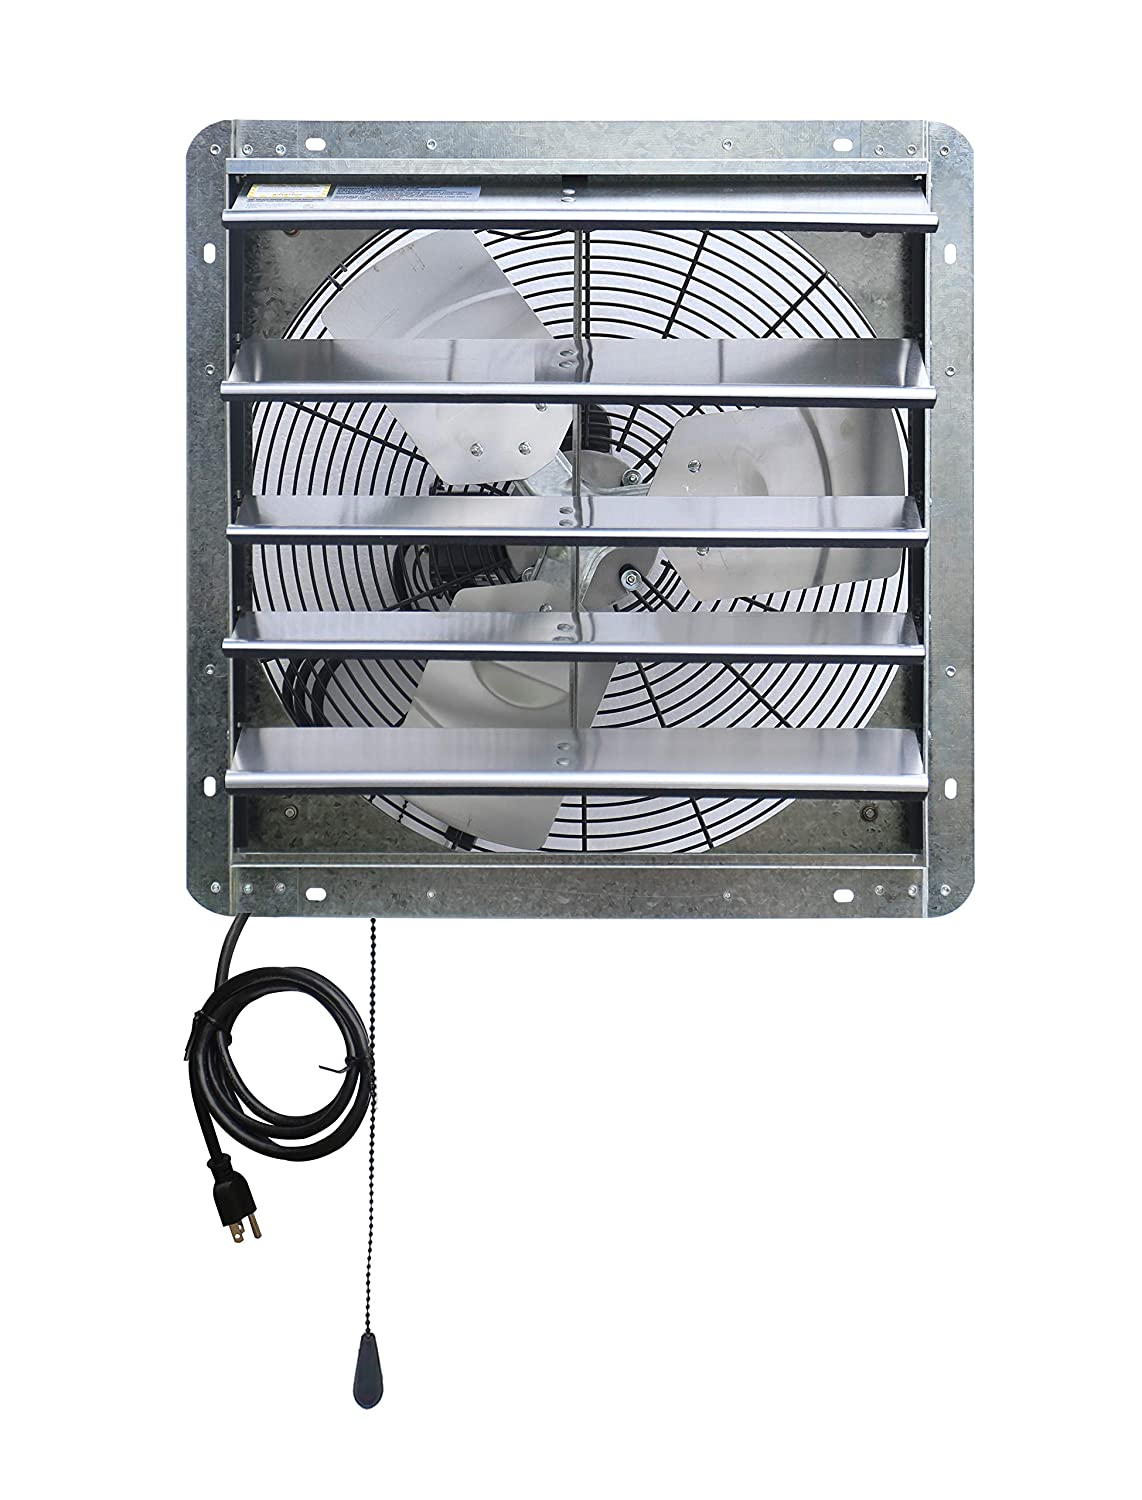 "Iliving ILG8SF18V-T 18 inch Shutter Exhaust Attic Garage Grow, Ventilation Fan with 3 Speed Thermostat 6 Foot Long 3 Plugs Cord, 18"" - Variable, Silver"